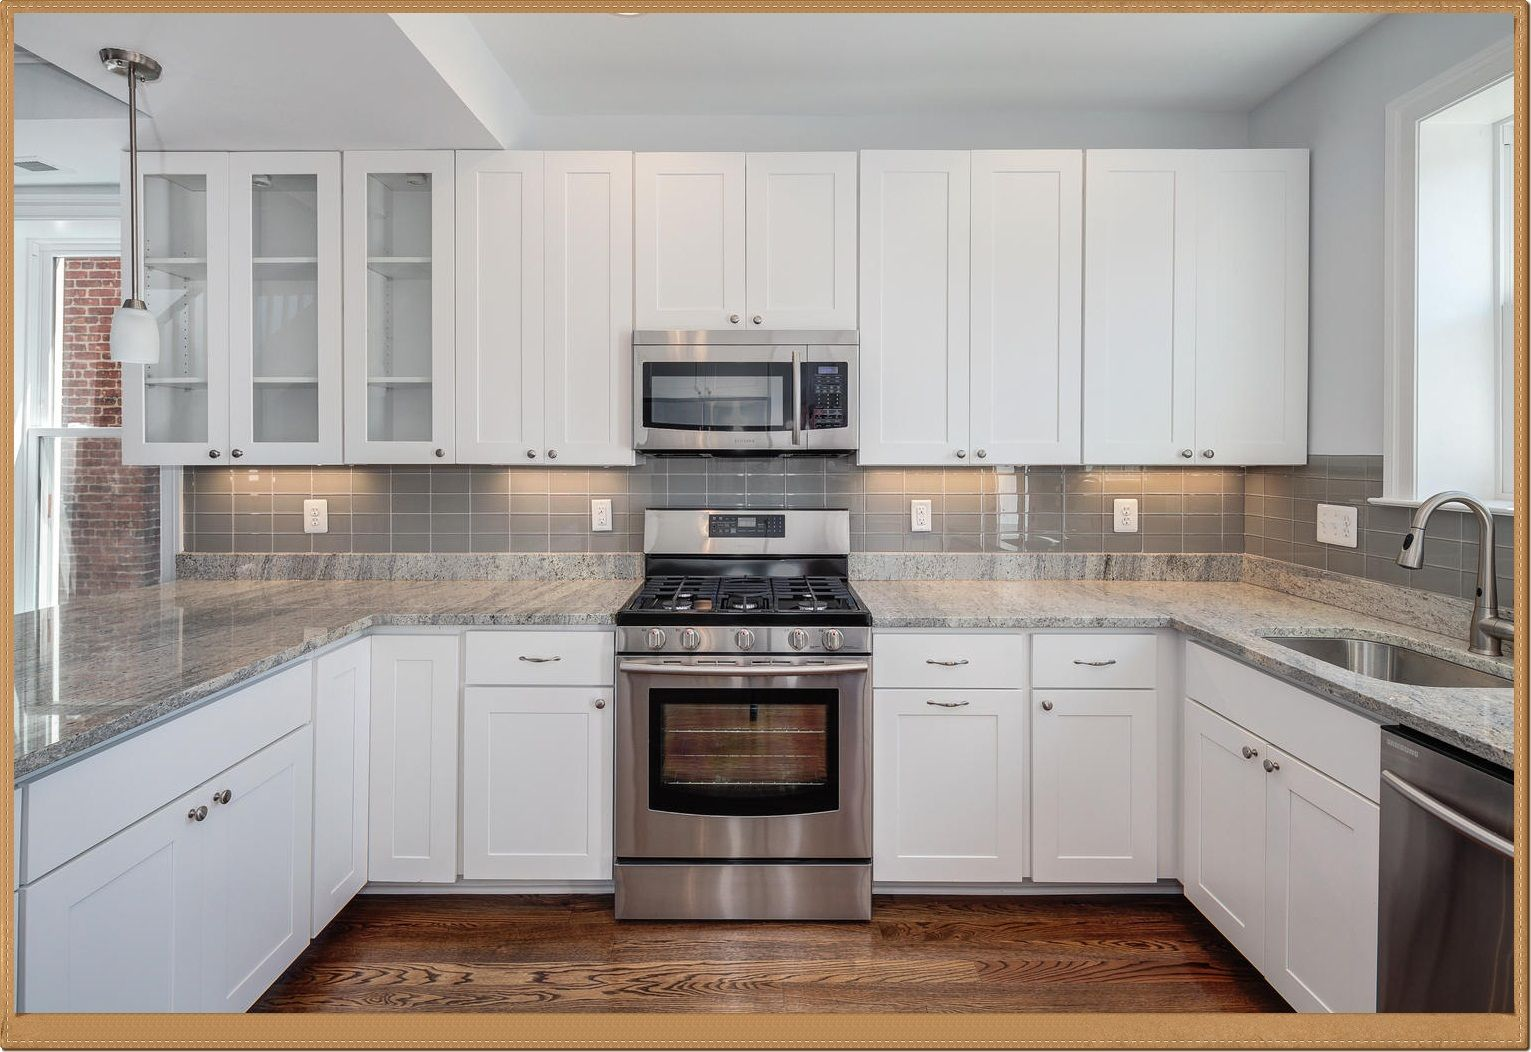 - Kitchen Backsplash Ideas With White Cabinets: Food For Thought